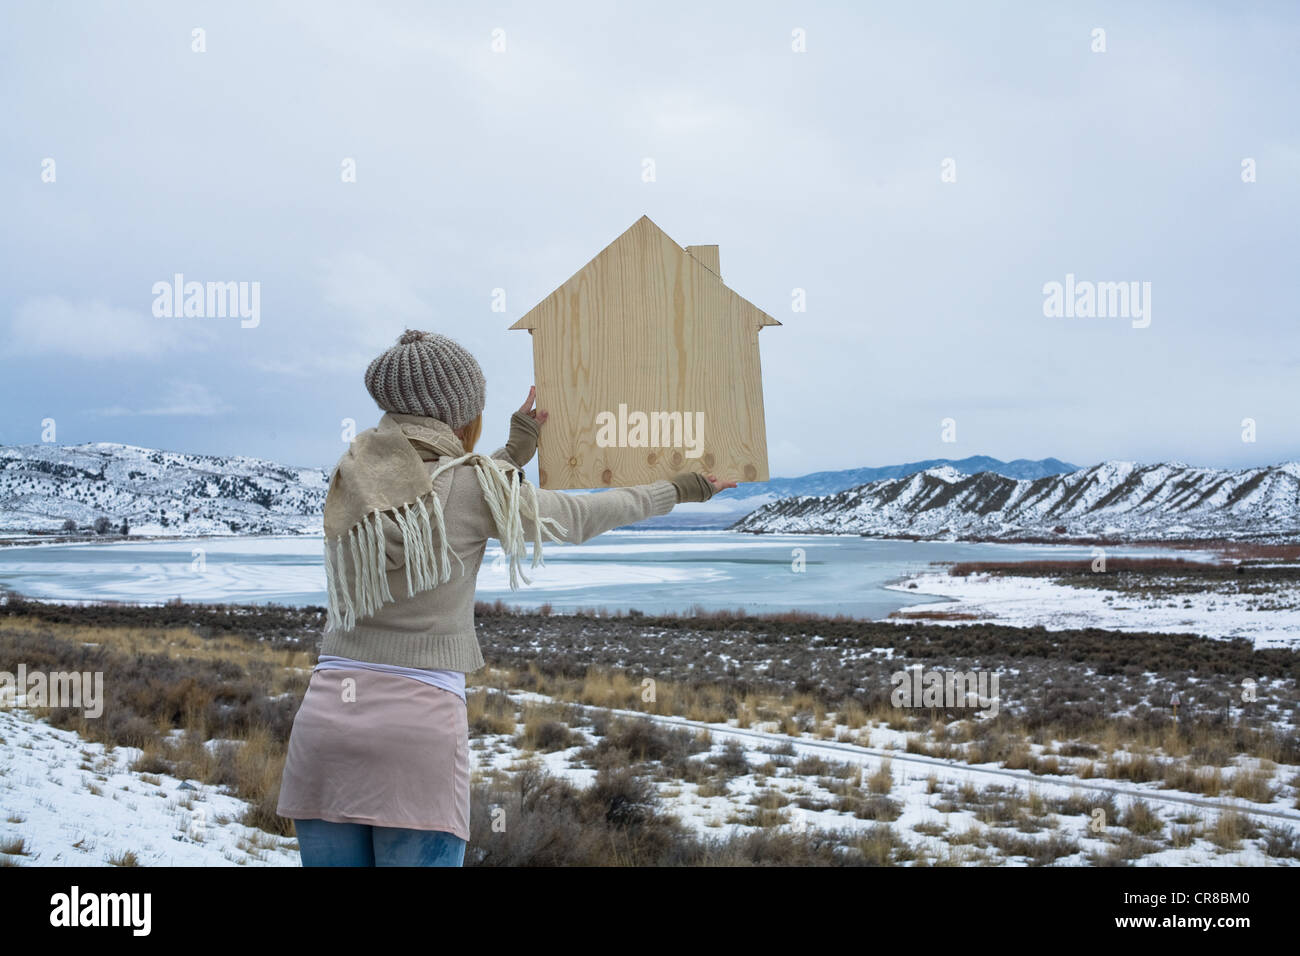 Woman in scenic landscape with wooden shape of a house - Stock Image